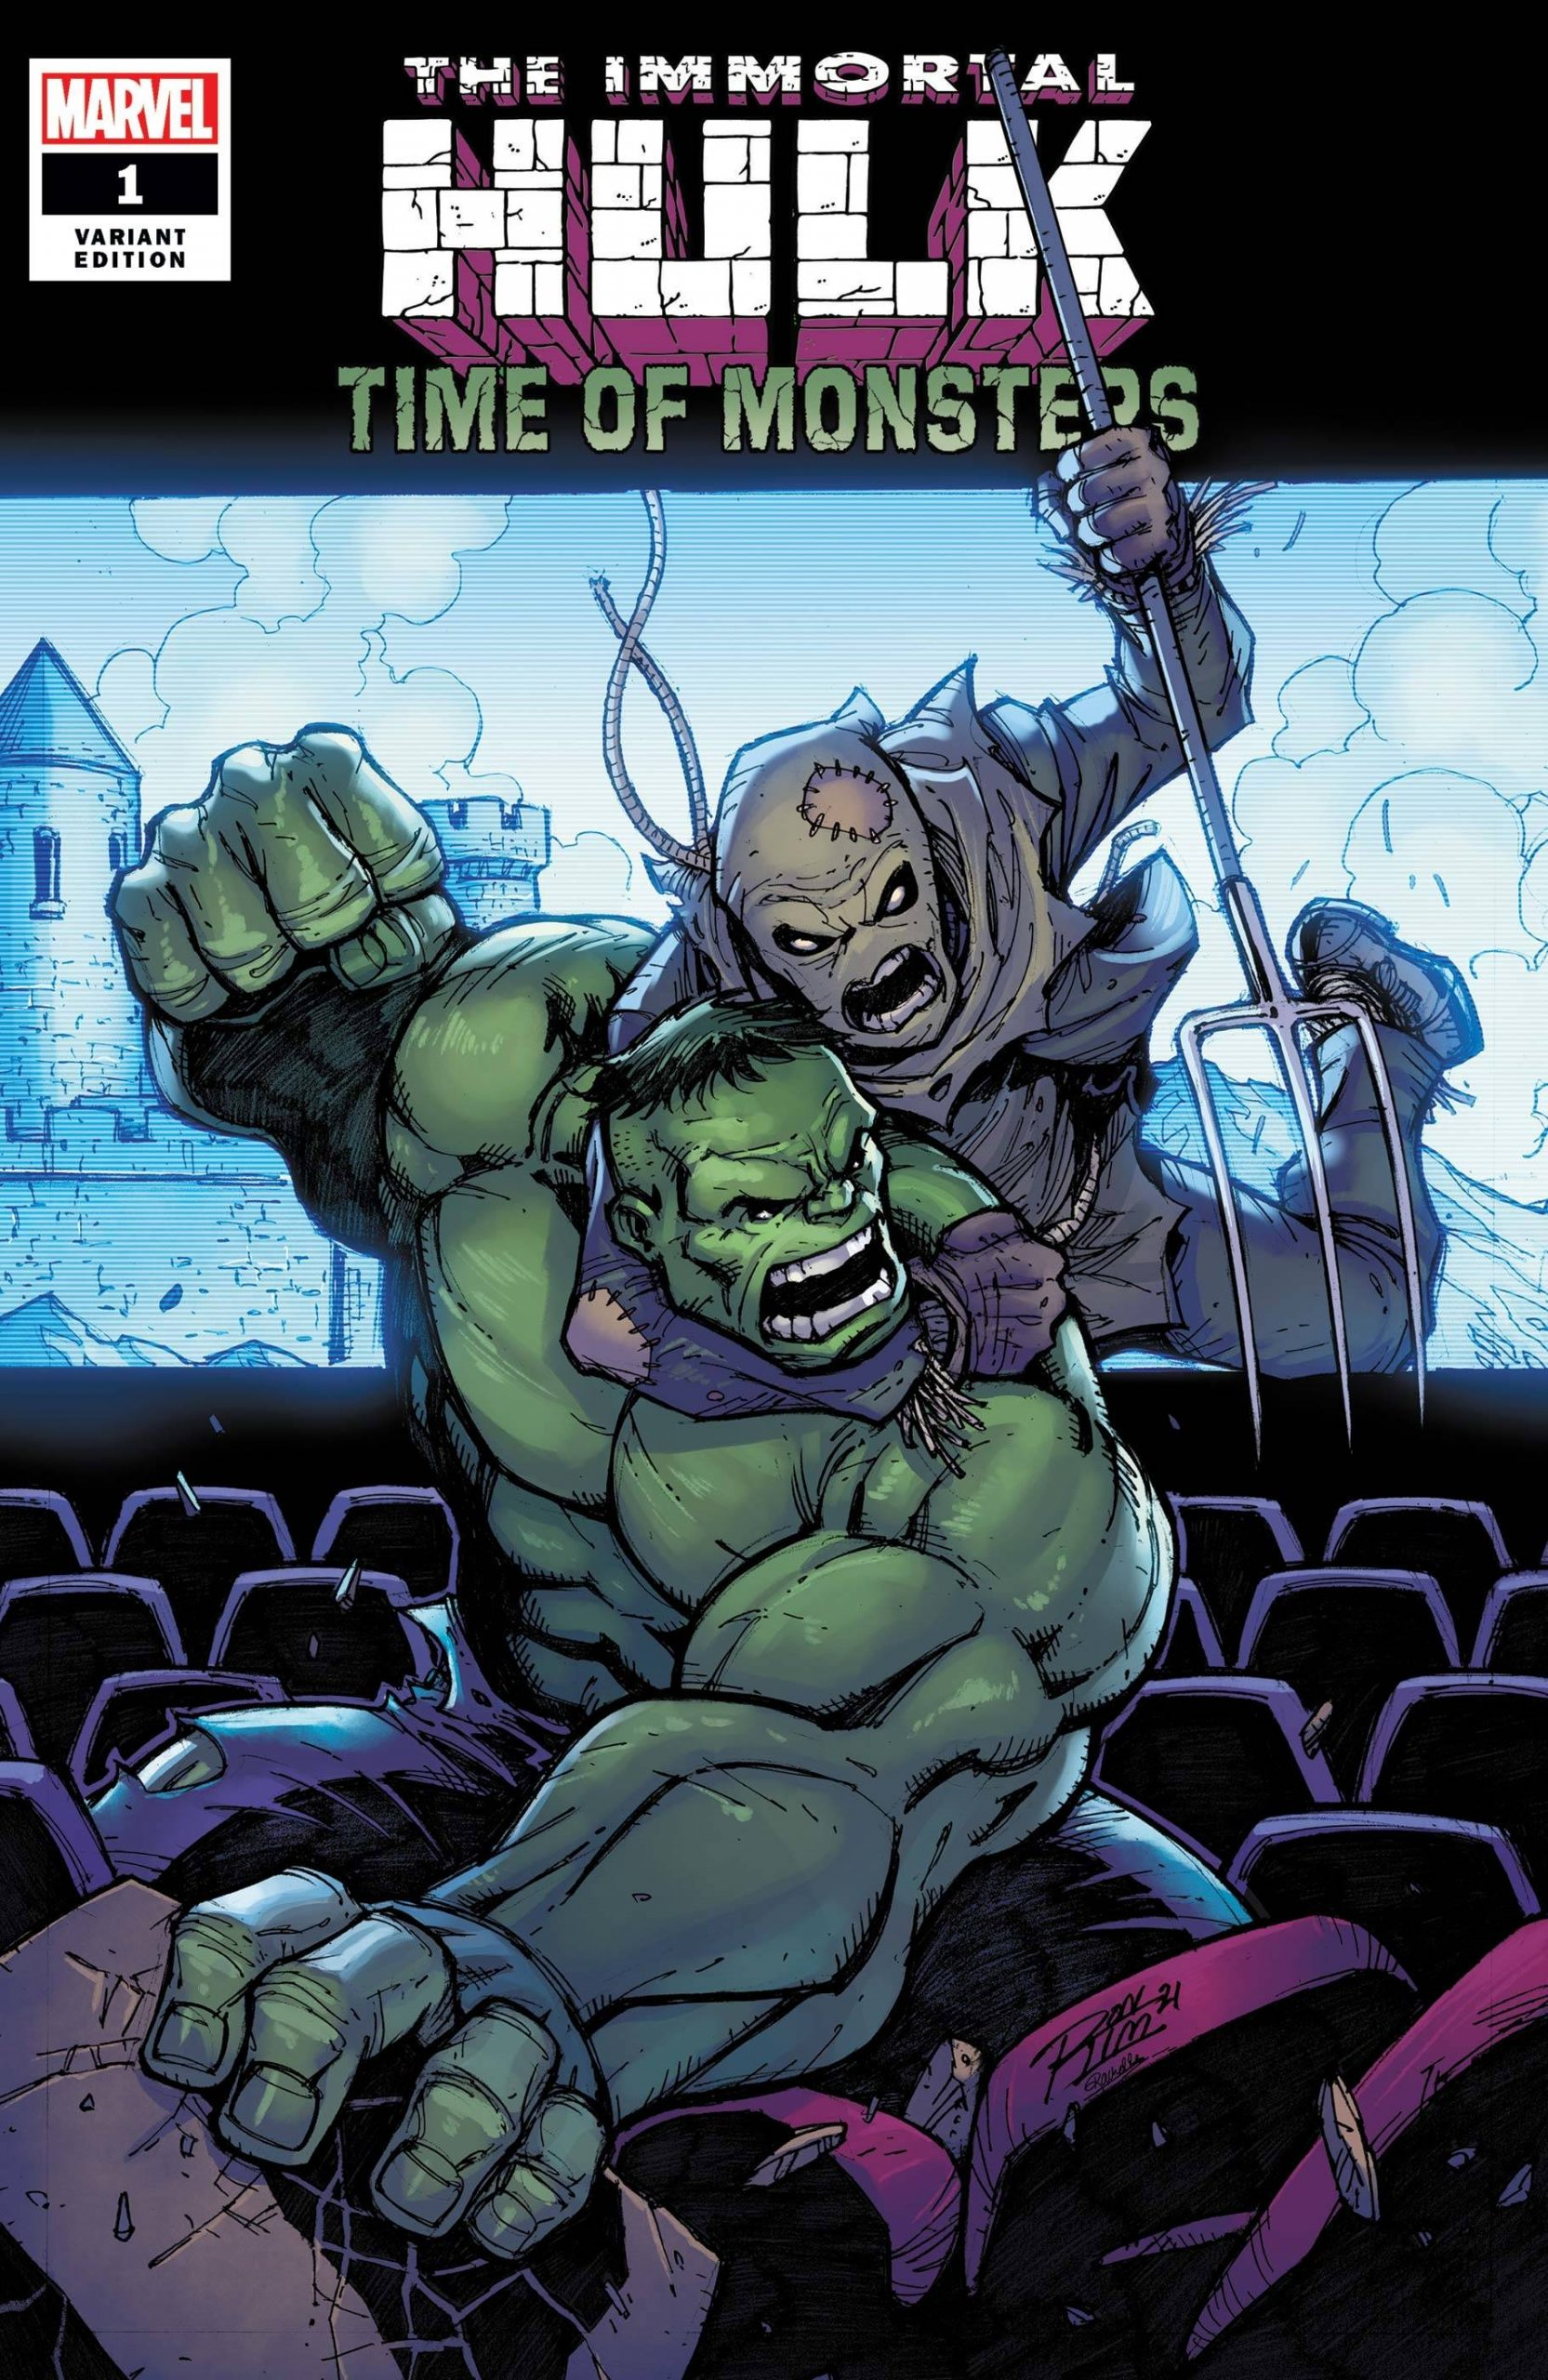 Immortal-Hulk-Time-Of-Monsters-1-spoilers-0-2-scaled-1 Immortal-Hulk-Time-Of-Monsters-1-spoilers-0-2-scaled-1